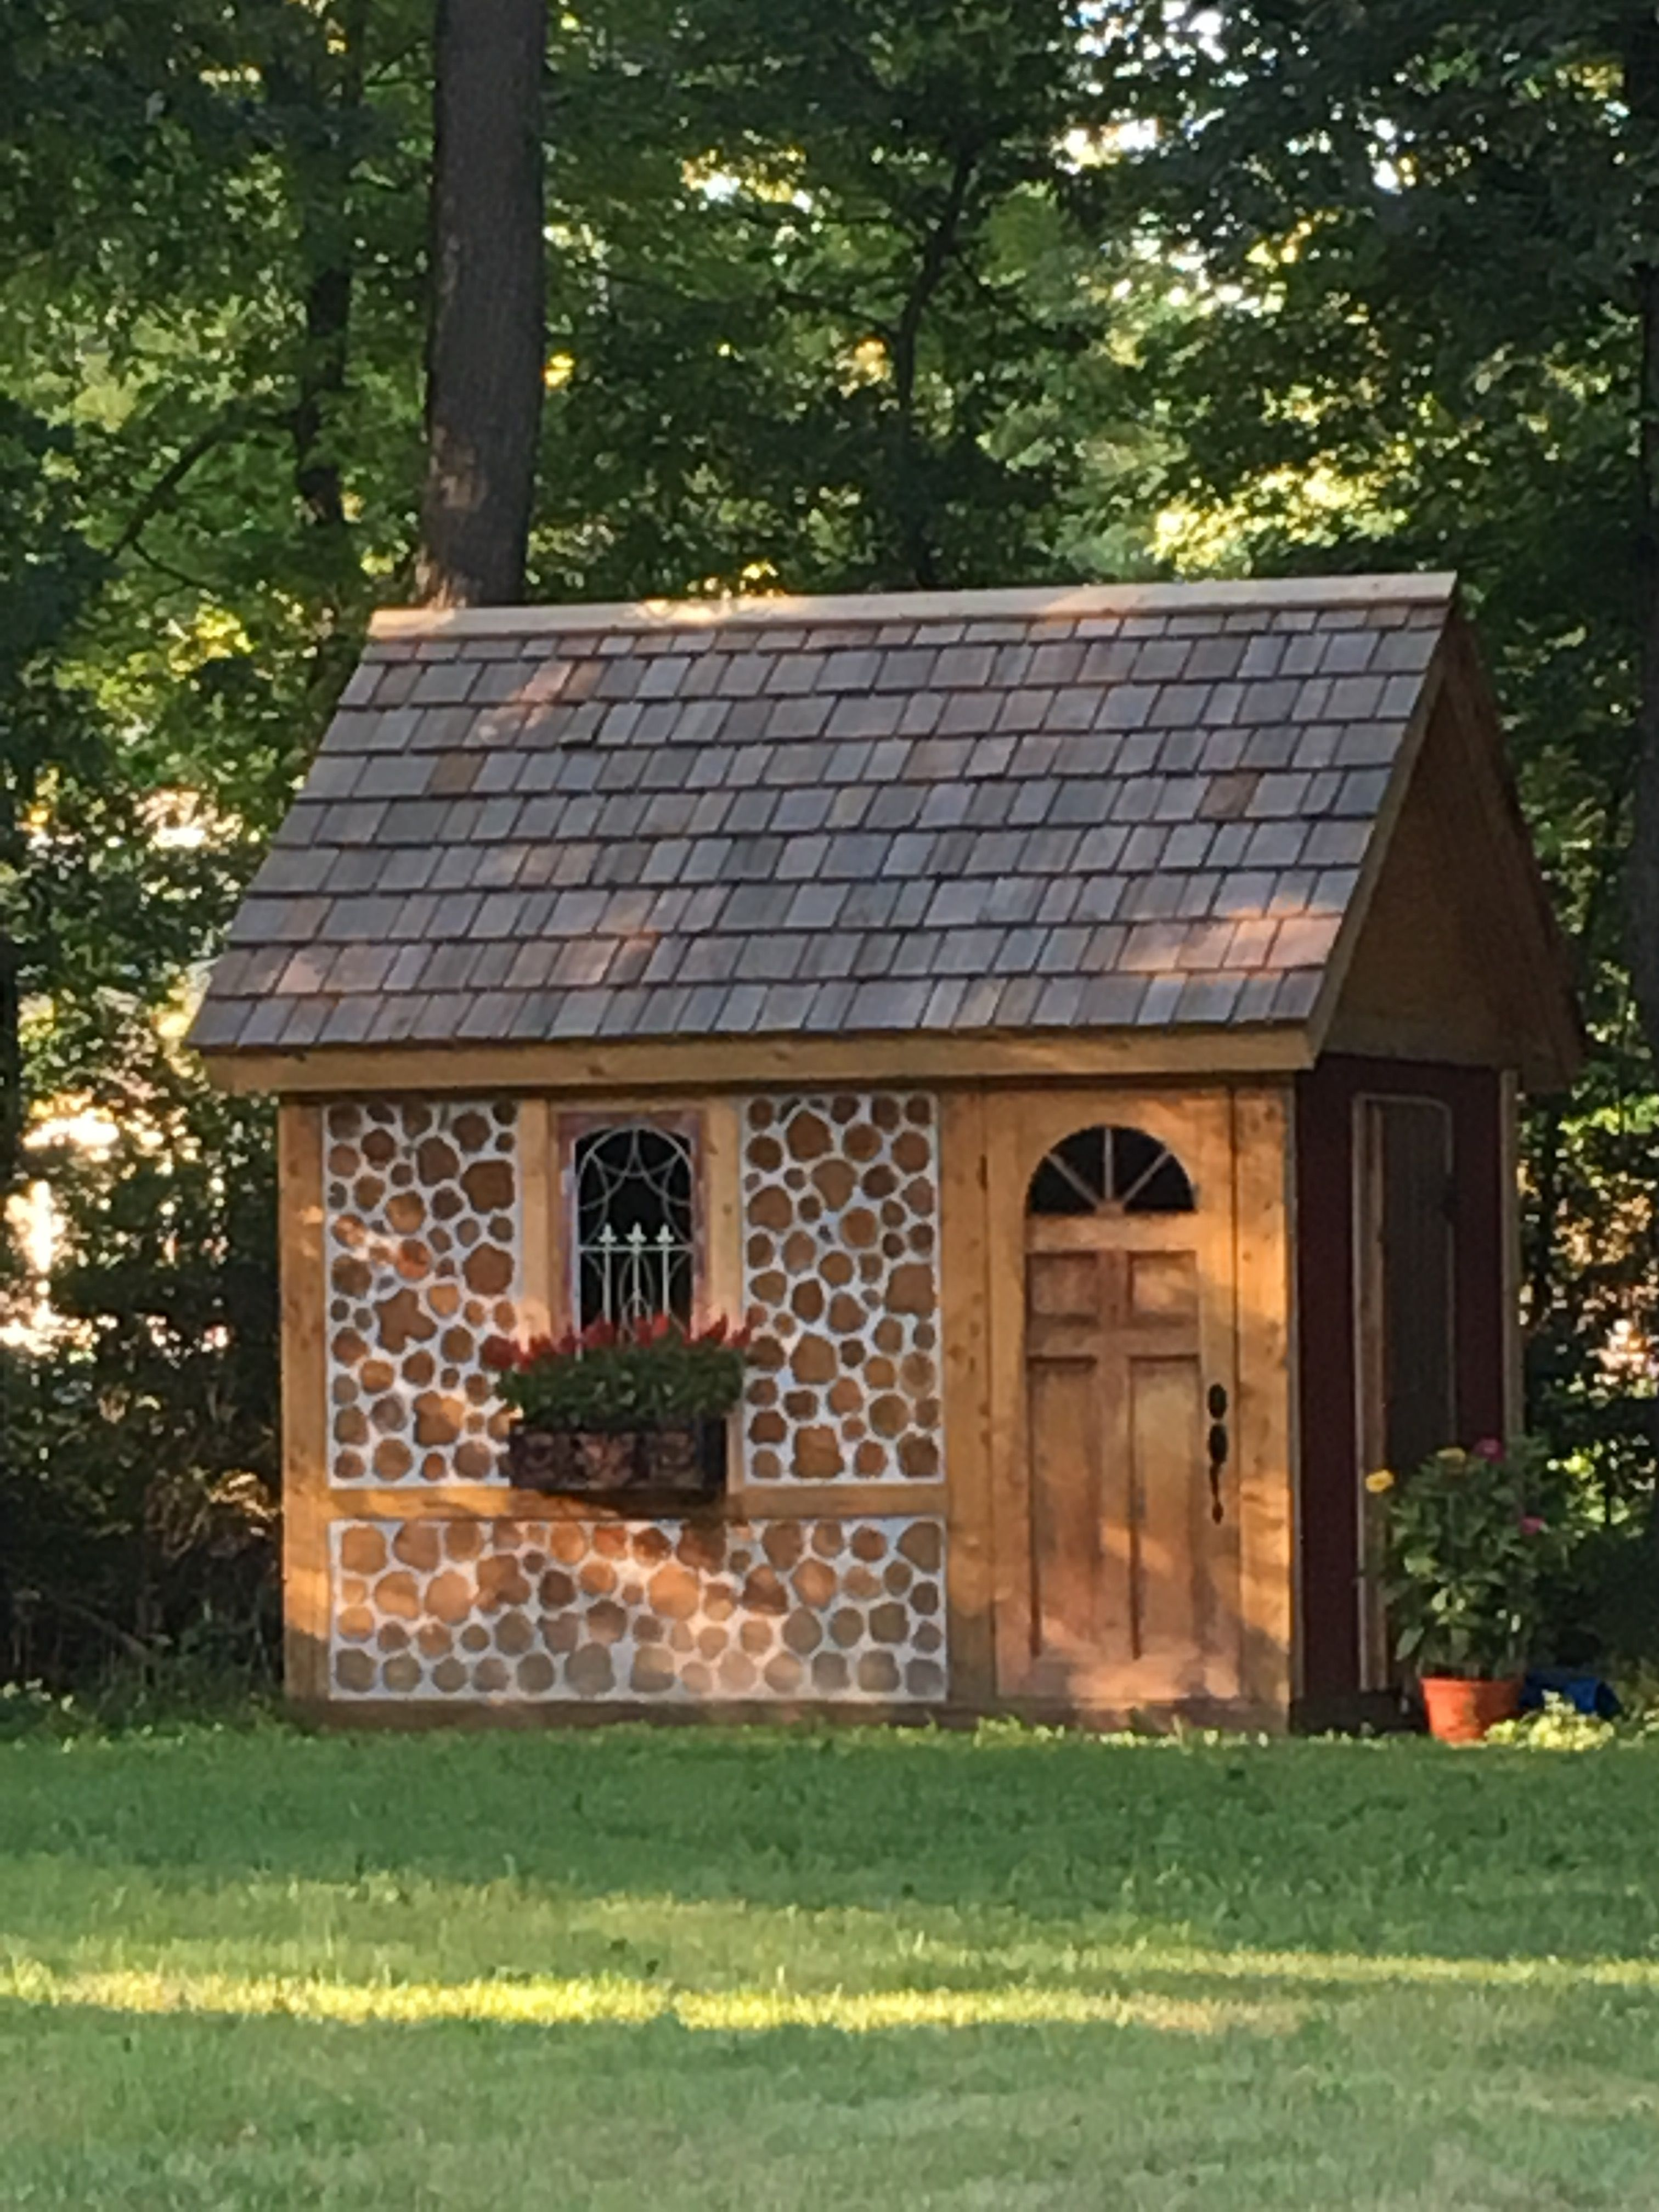 My Irish Garden Shed Hand Crafted In Poughkeepsie Ny Shed Irish Garden House Styles